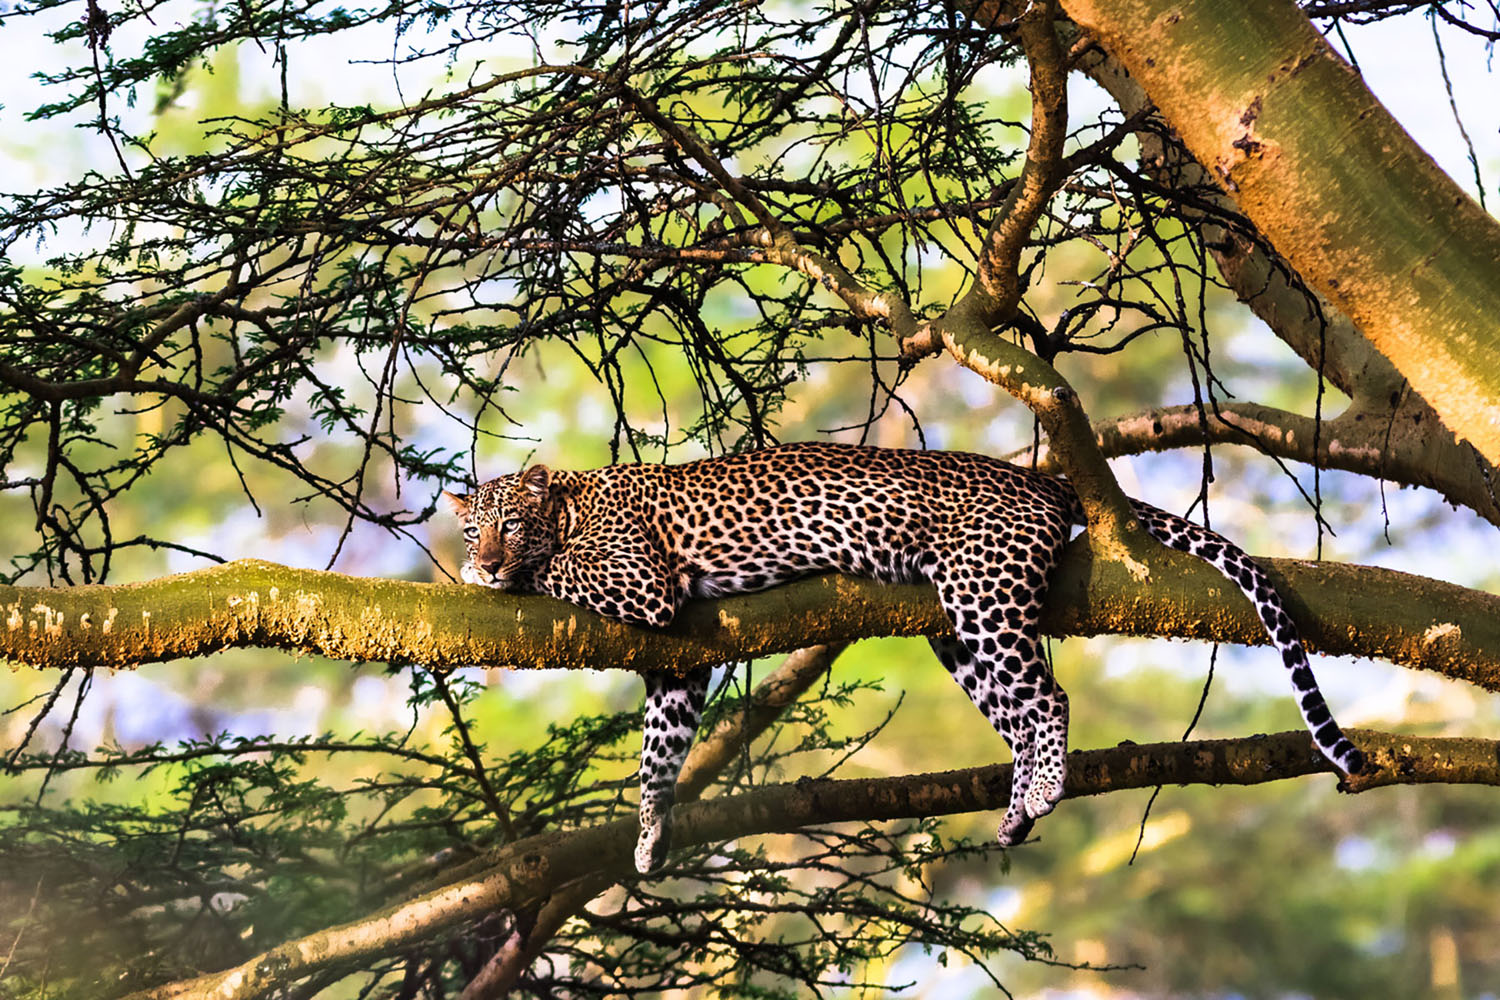 A leopard relaxing sleepily in a tree.